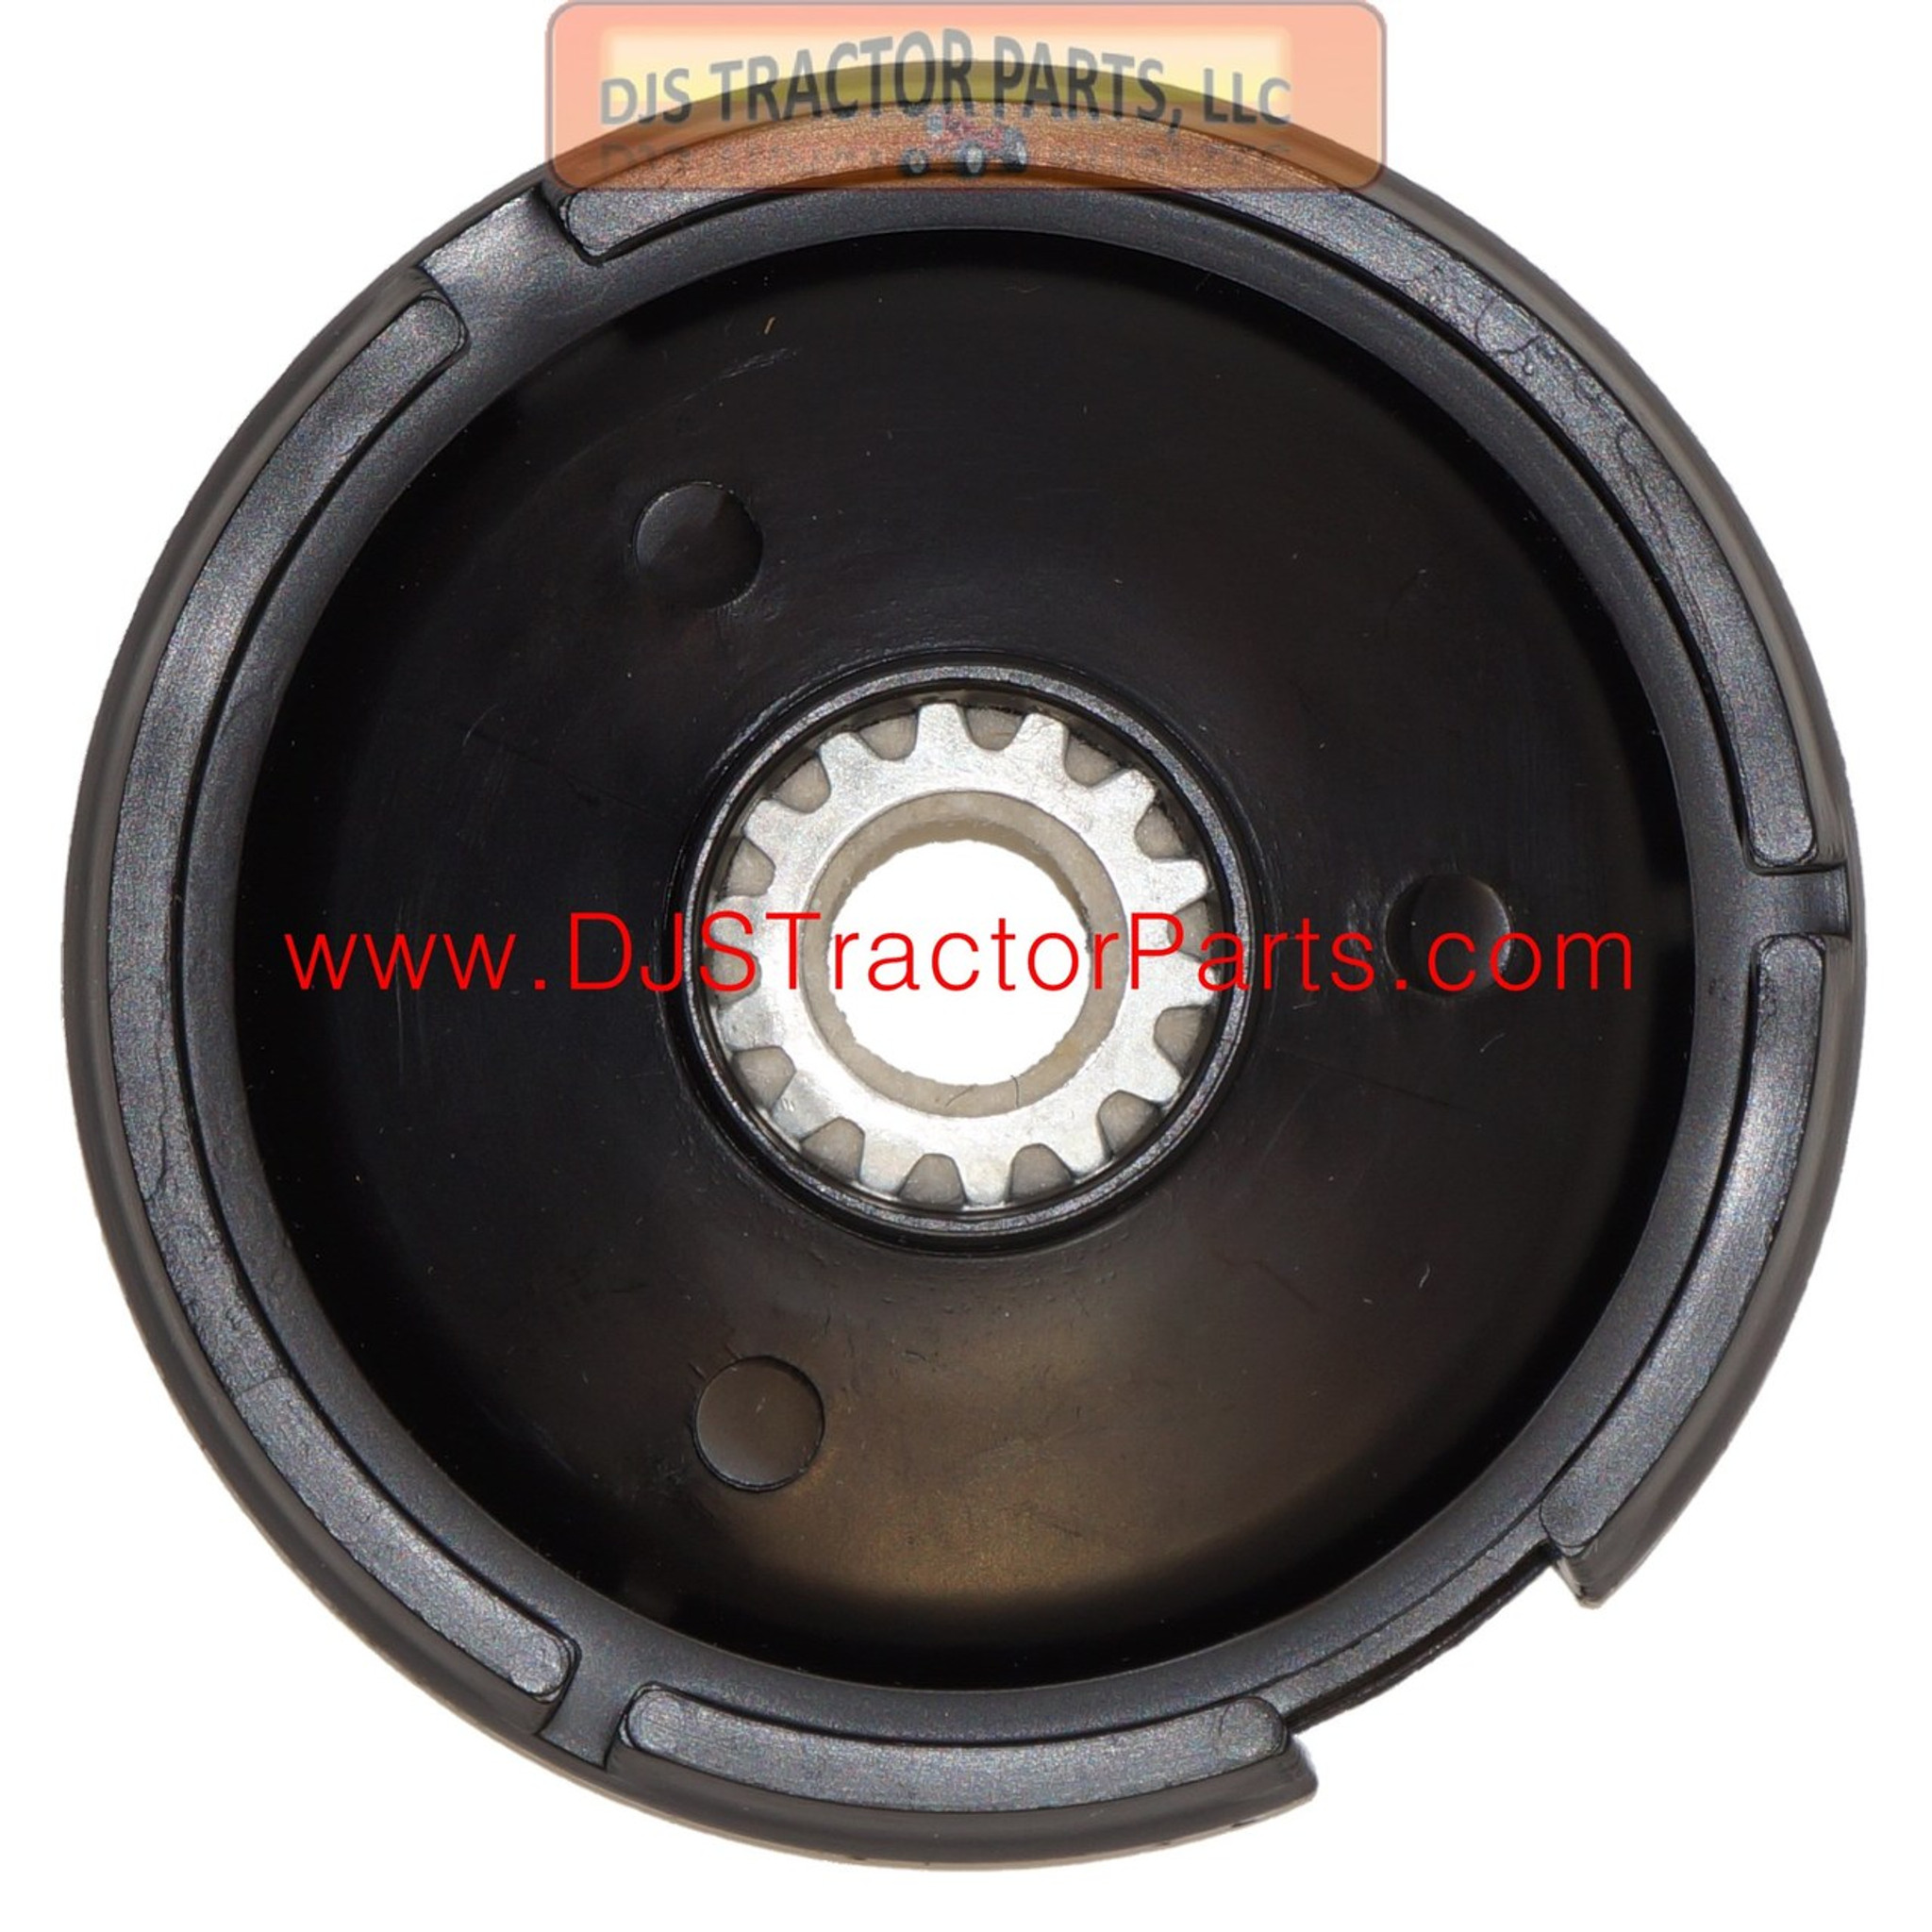 Distributor Dust Cover with Felt Gasket and Washer - AB-186D - DJS ...